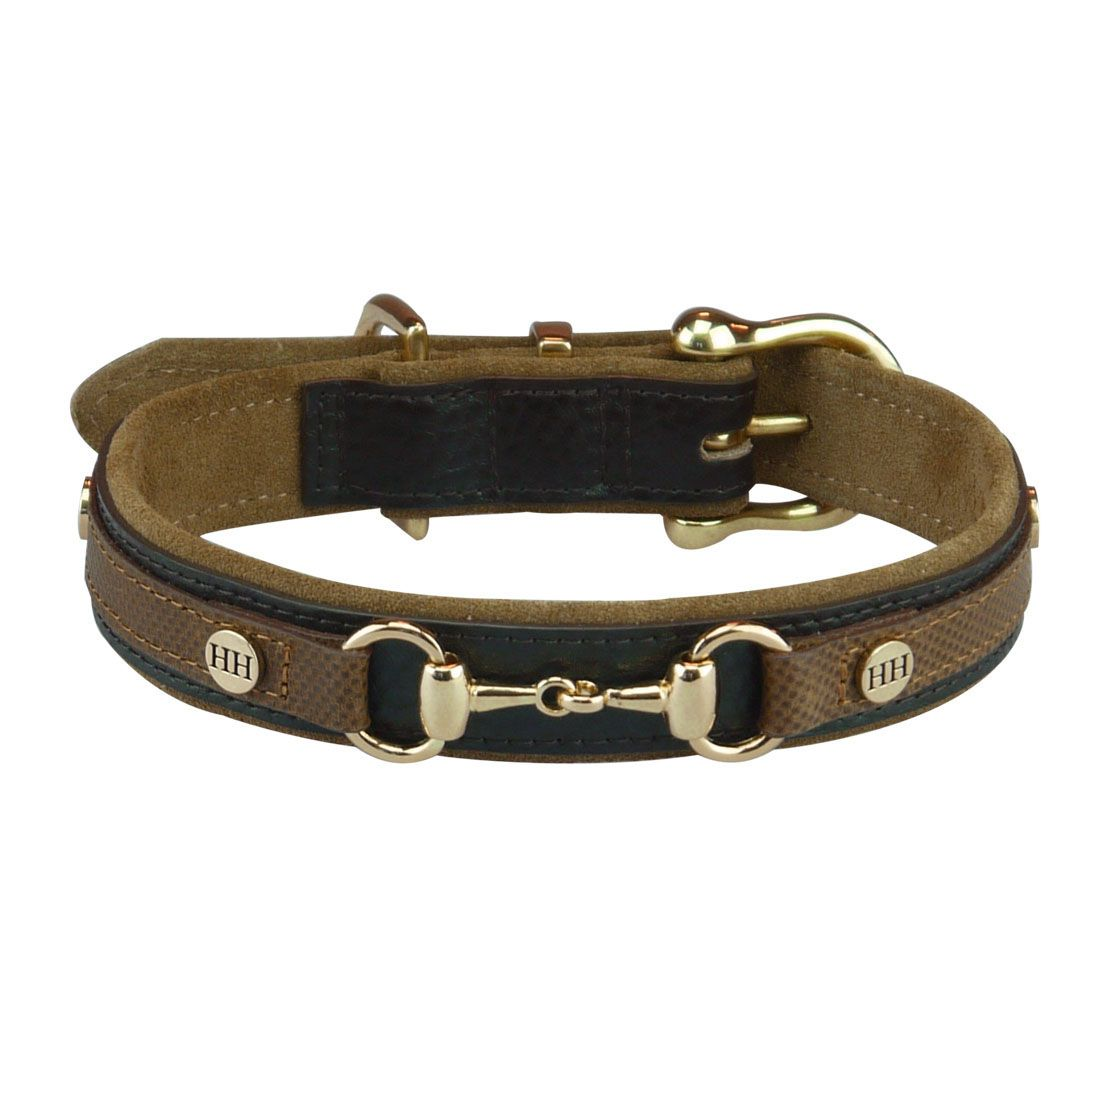 Luxe classic leren halsband maat m bruin happy house for Classic house nl